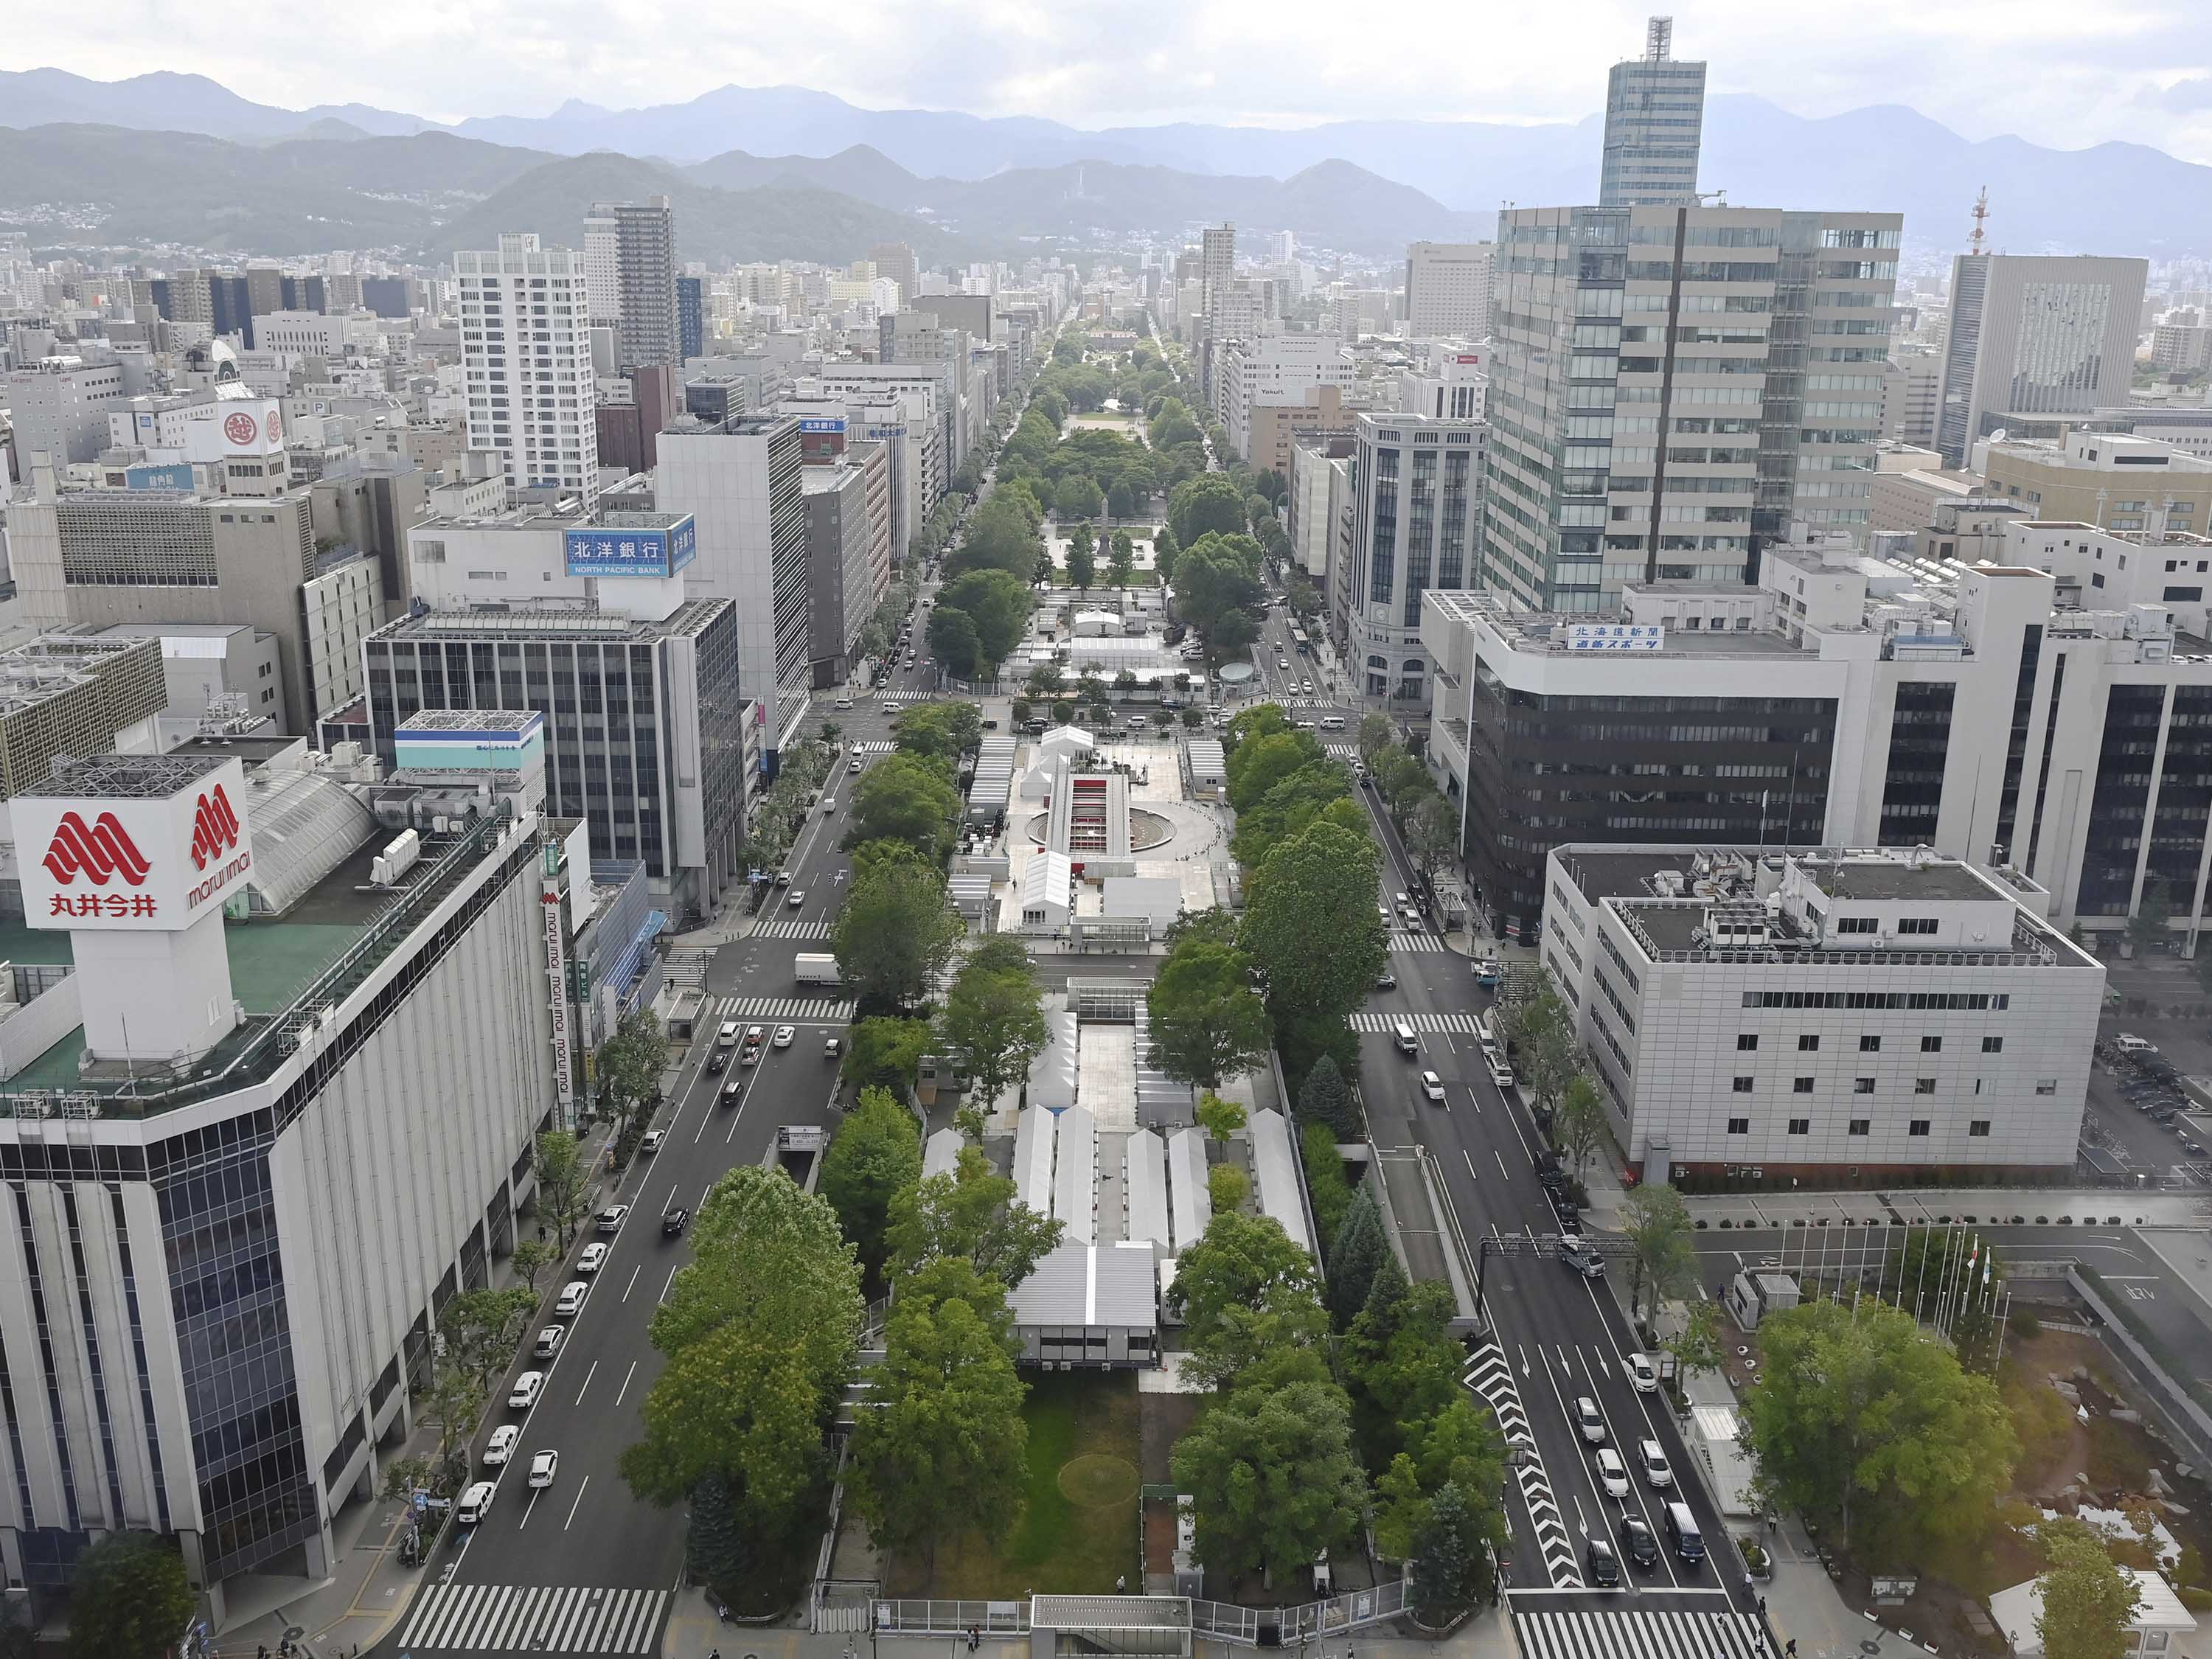 Sapporo Odori Park, the venue for the Olympic marathon and race walking events, is pictured in Sapporo, Japan, on July 12.